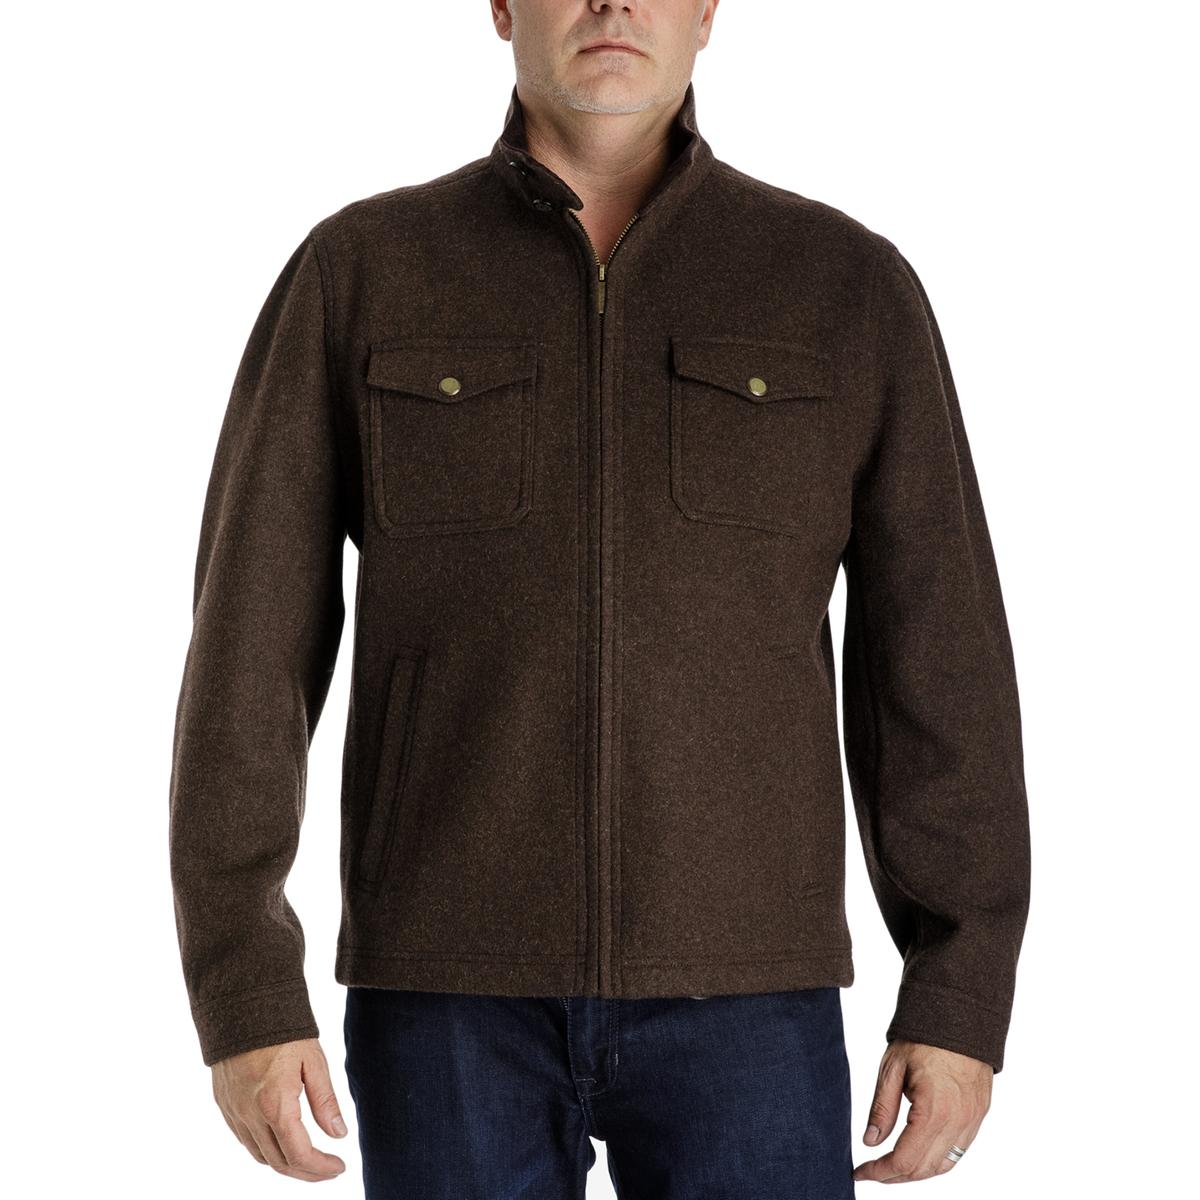 c317fbaf98f9 Details about London Fog Mens Brown Spring Shirt Jacket Outerwear Big   Tall  2XLT BHFO 2403